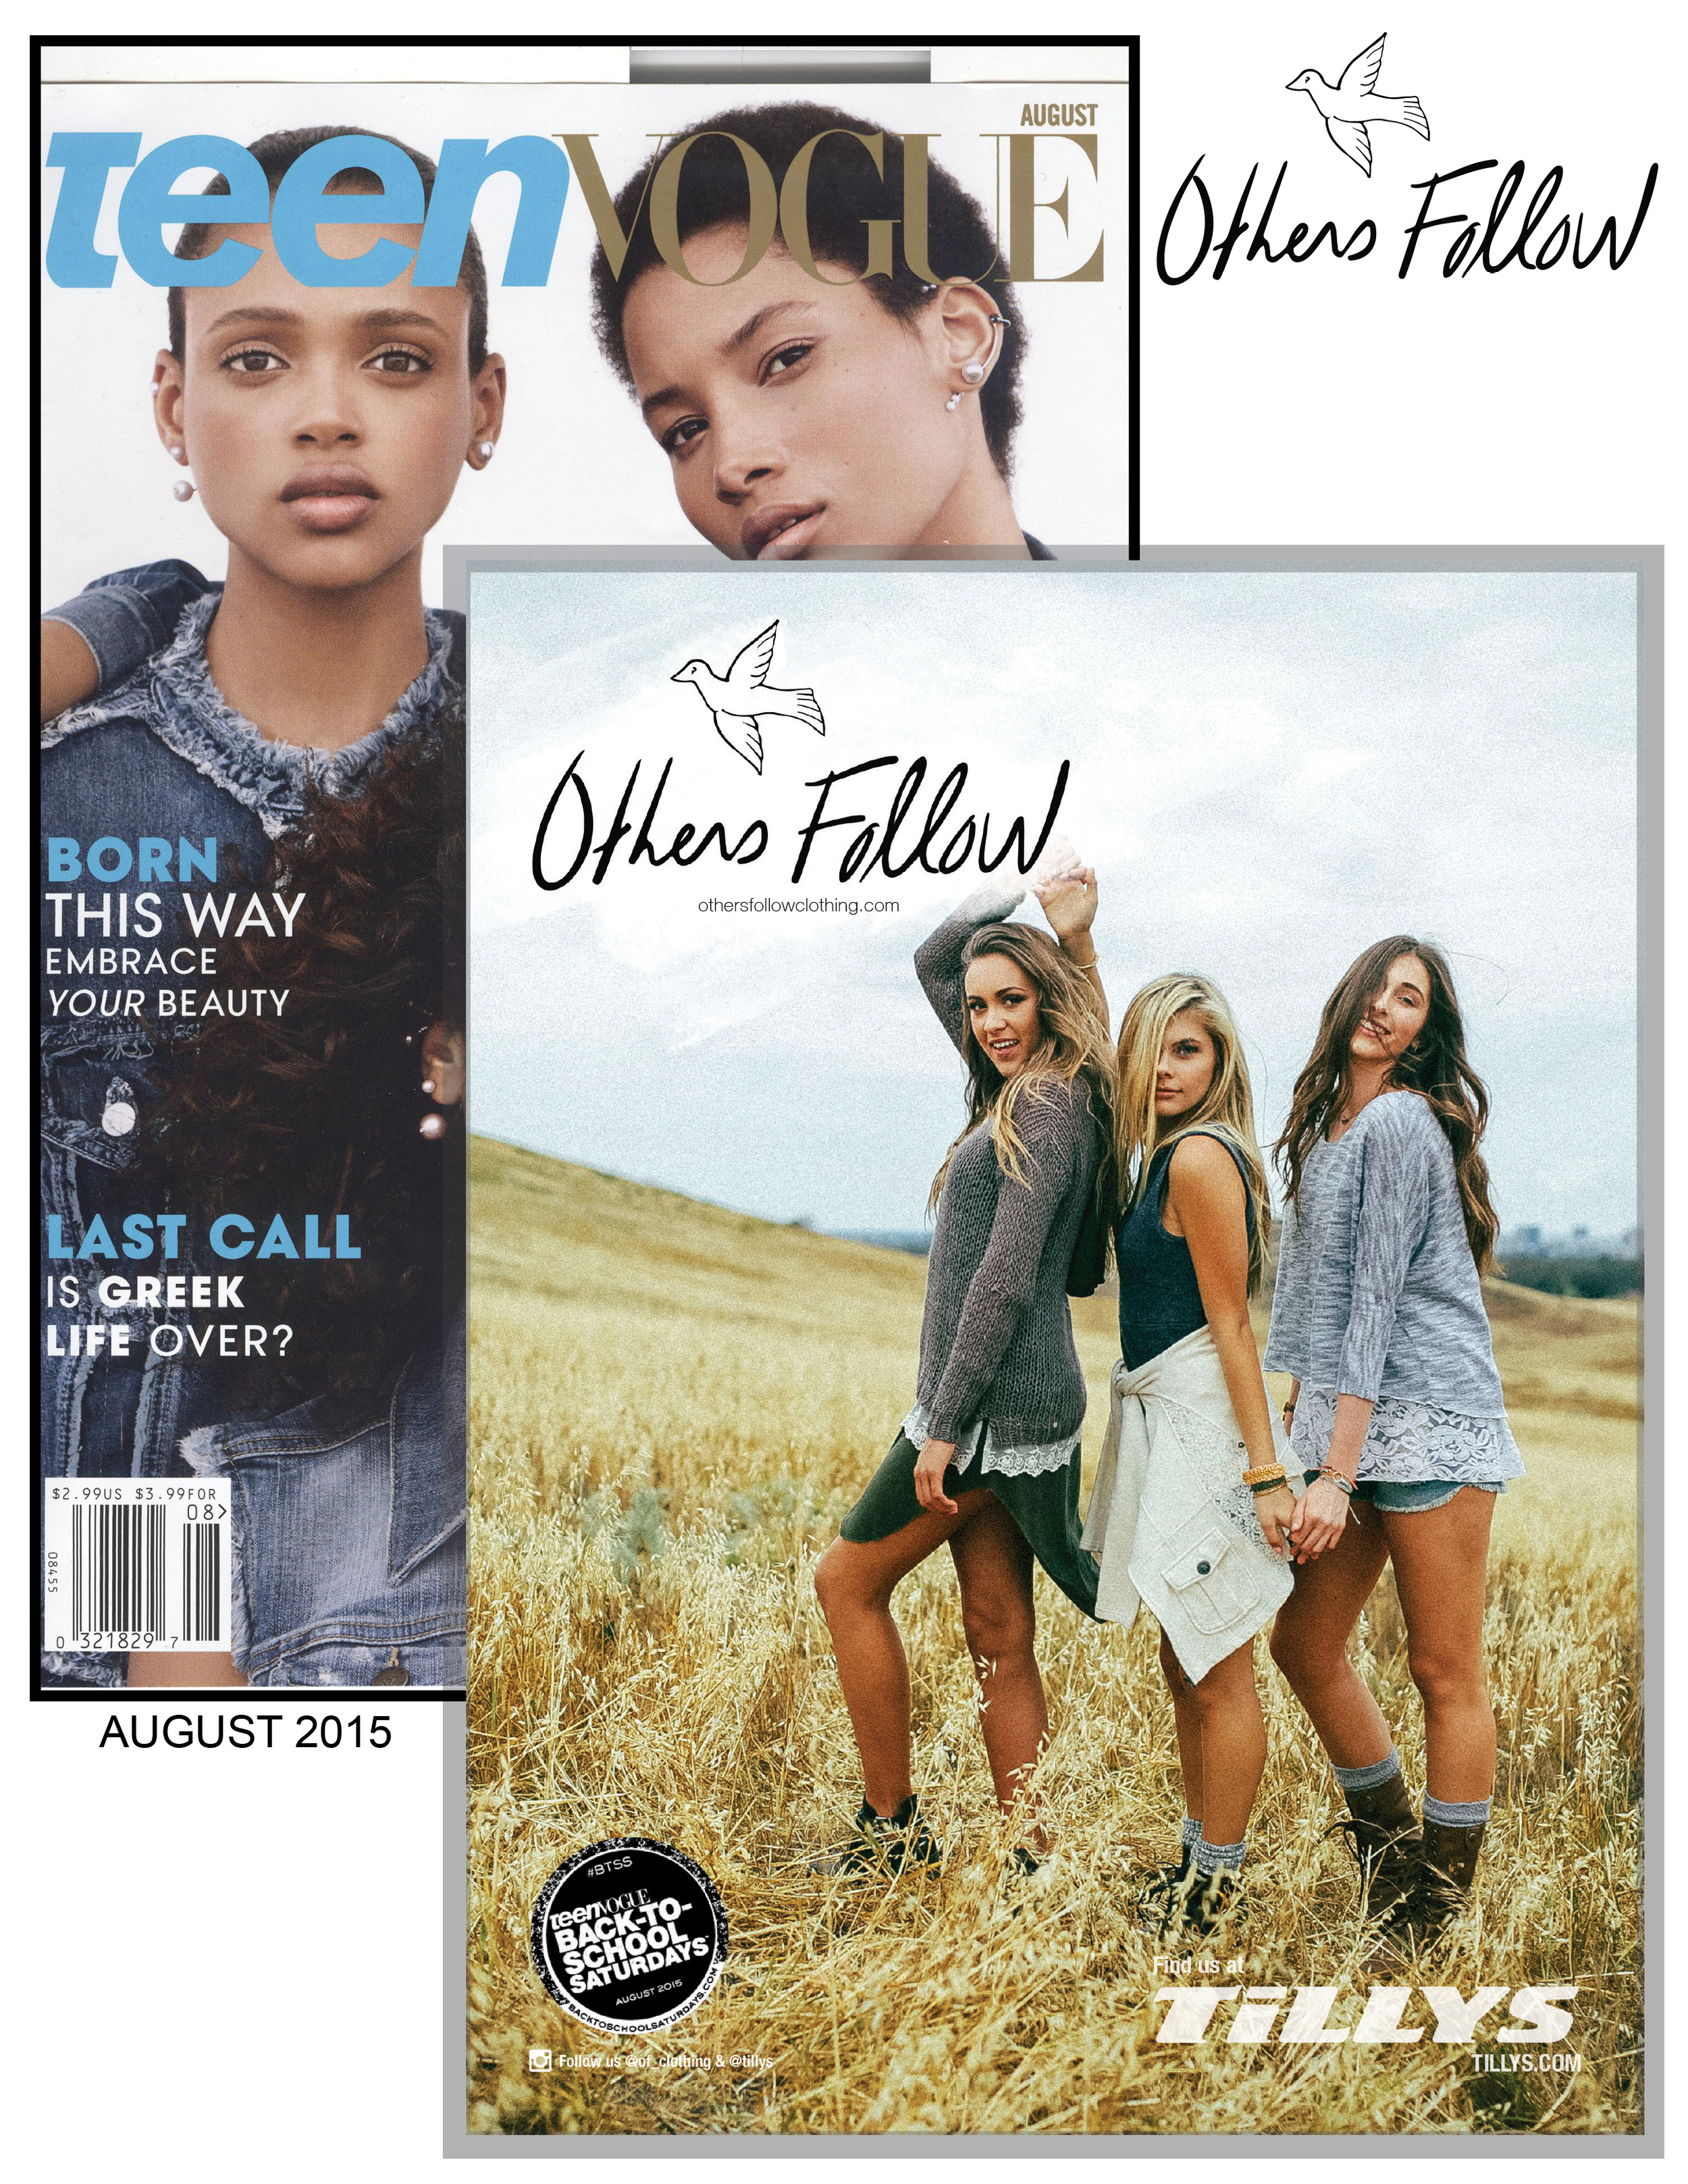 OF_TeenVogue_Ad_August2015-2.jpg